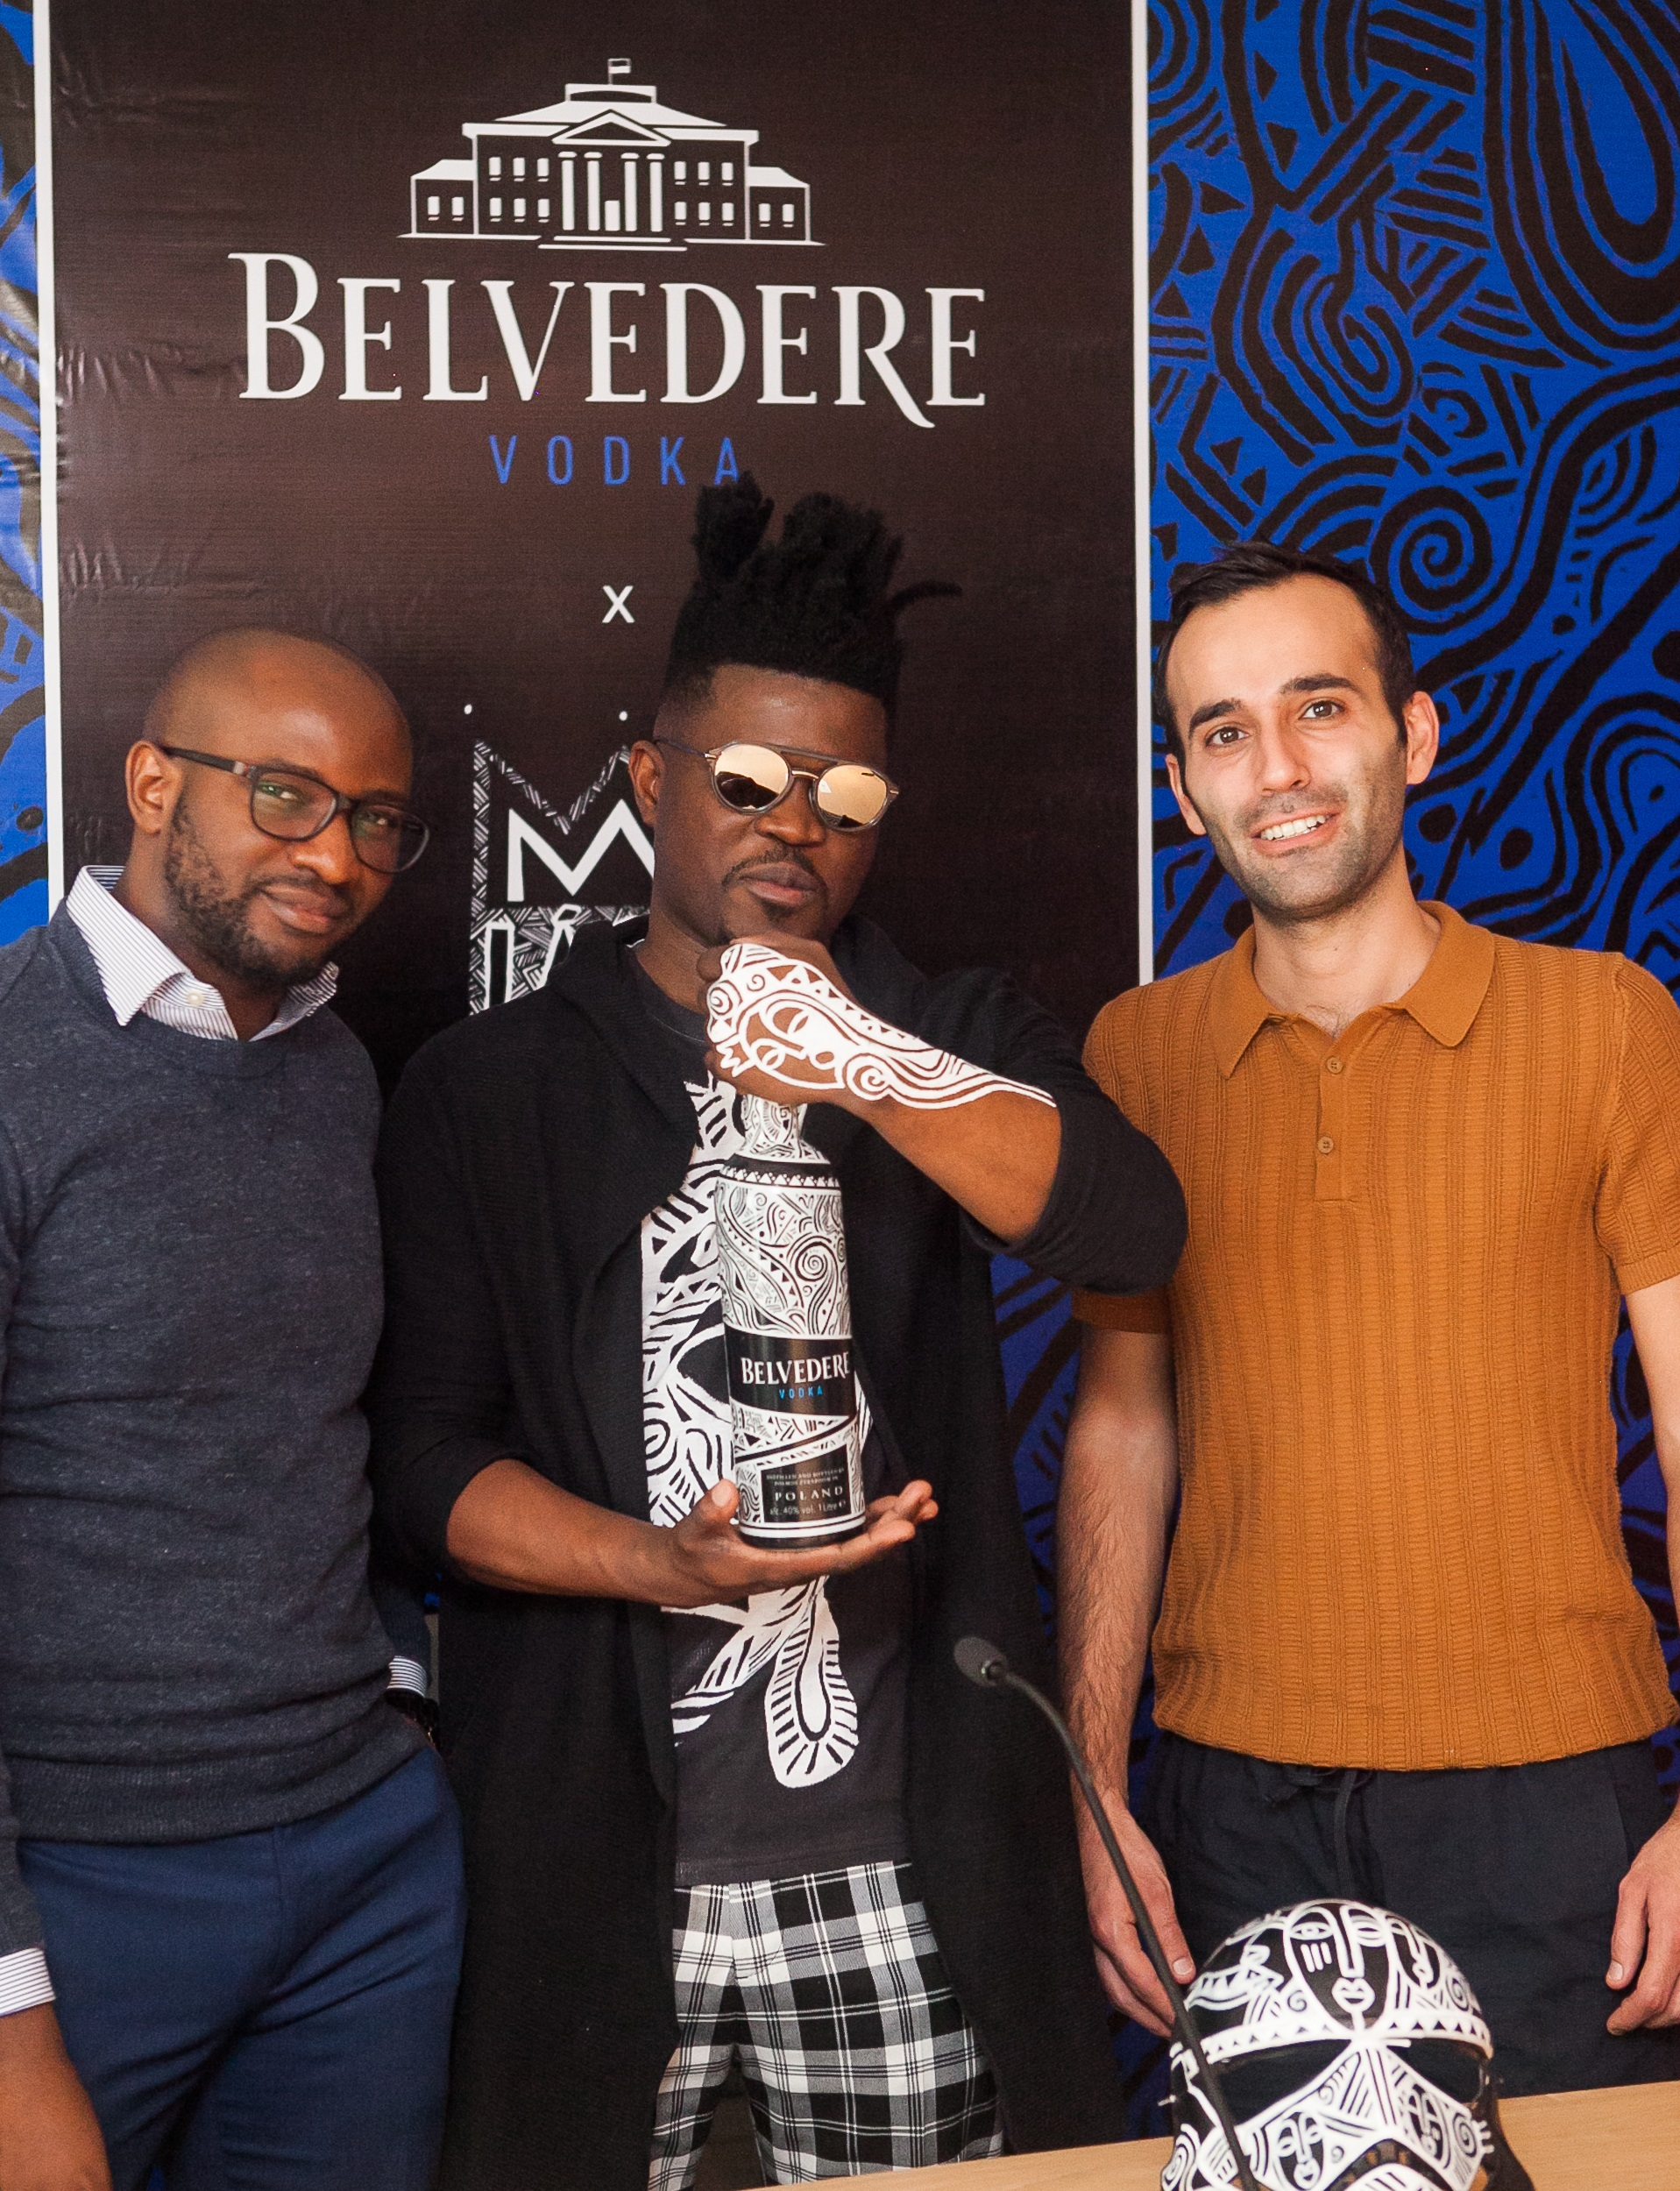 Belvedere Vodka and Laolu Senbanjo Unveil New Limited-Edition Bottle in Nigeria